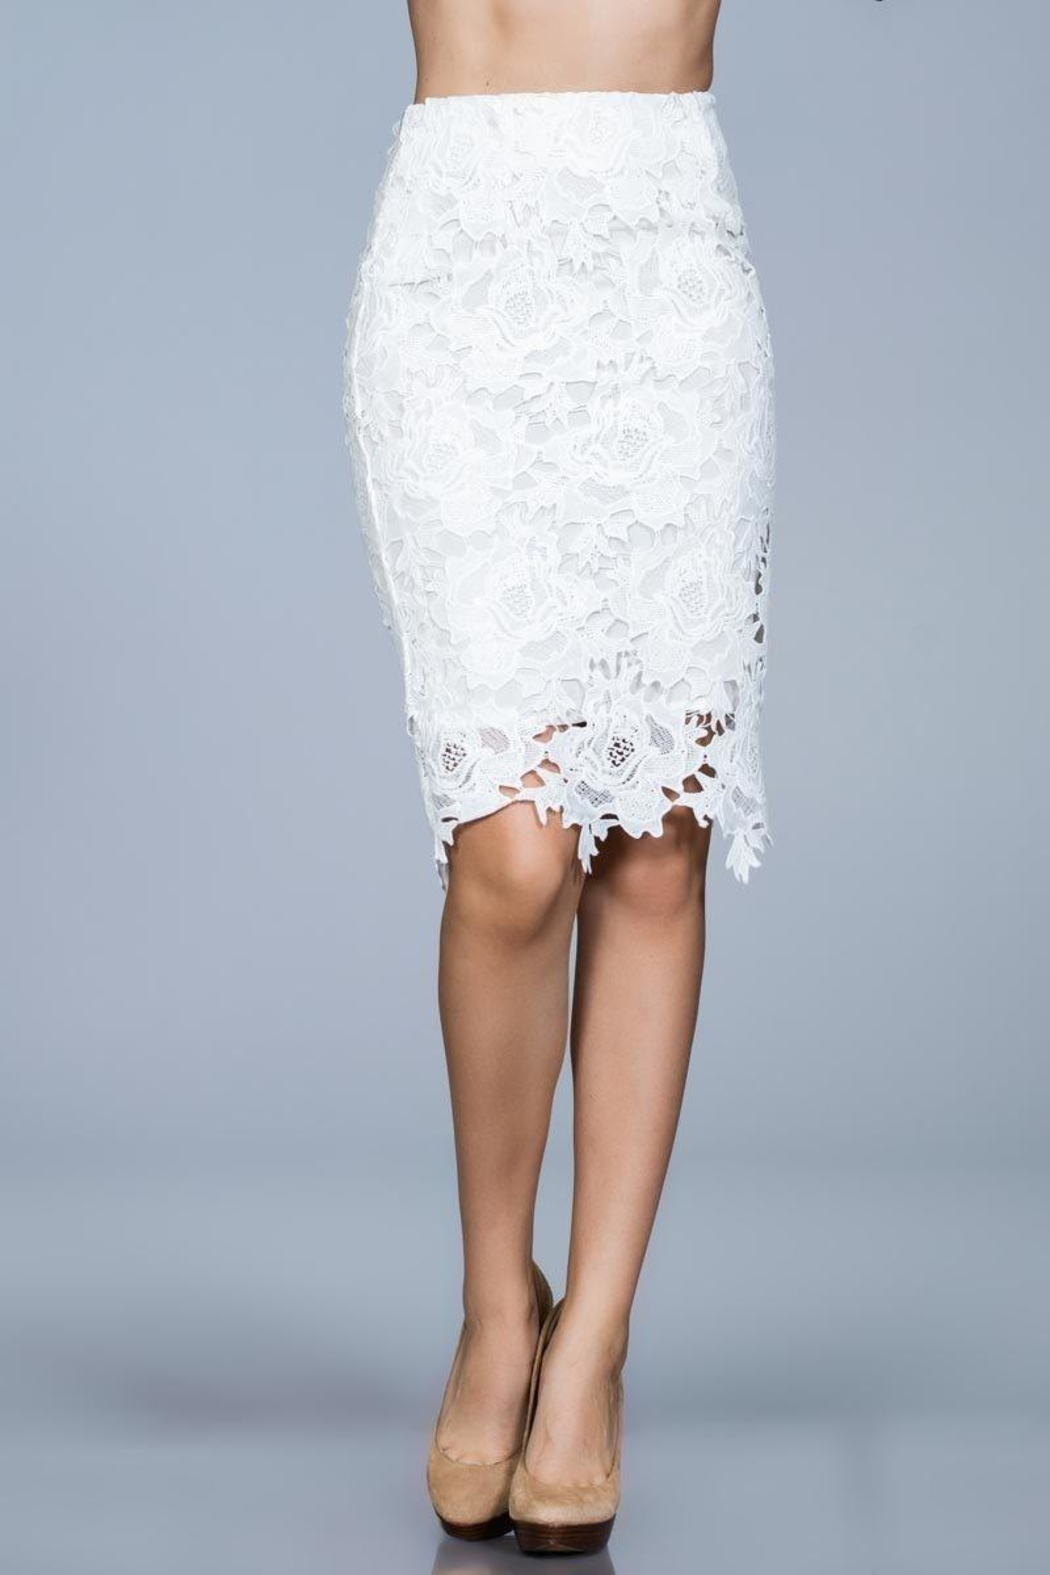 Ark & Co. White Lace Skirt - Main Image